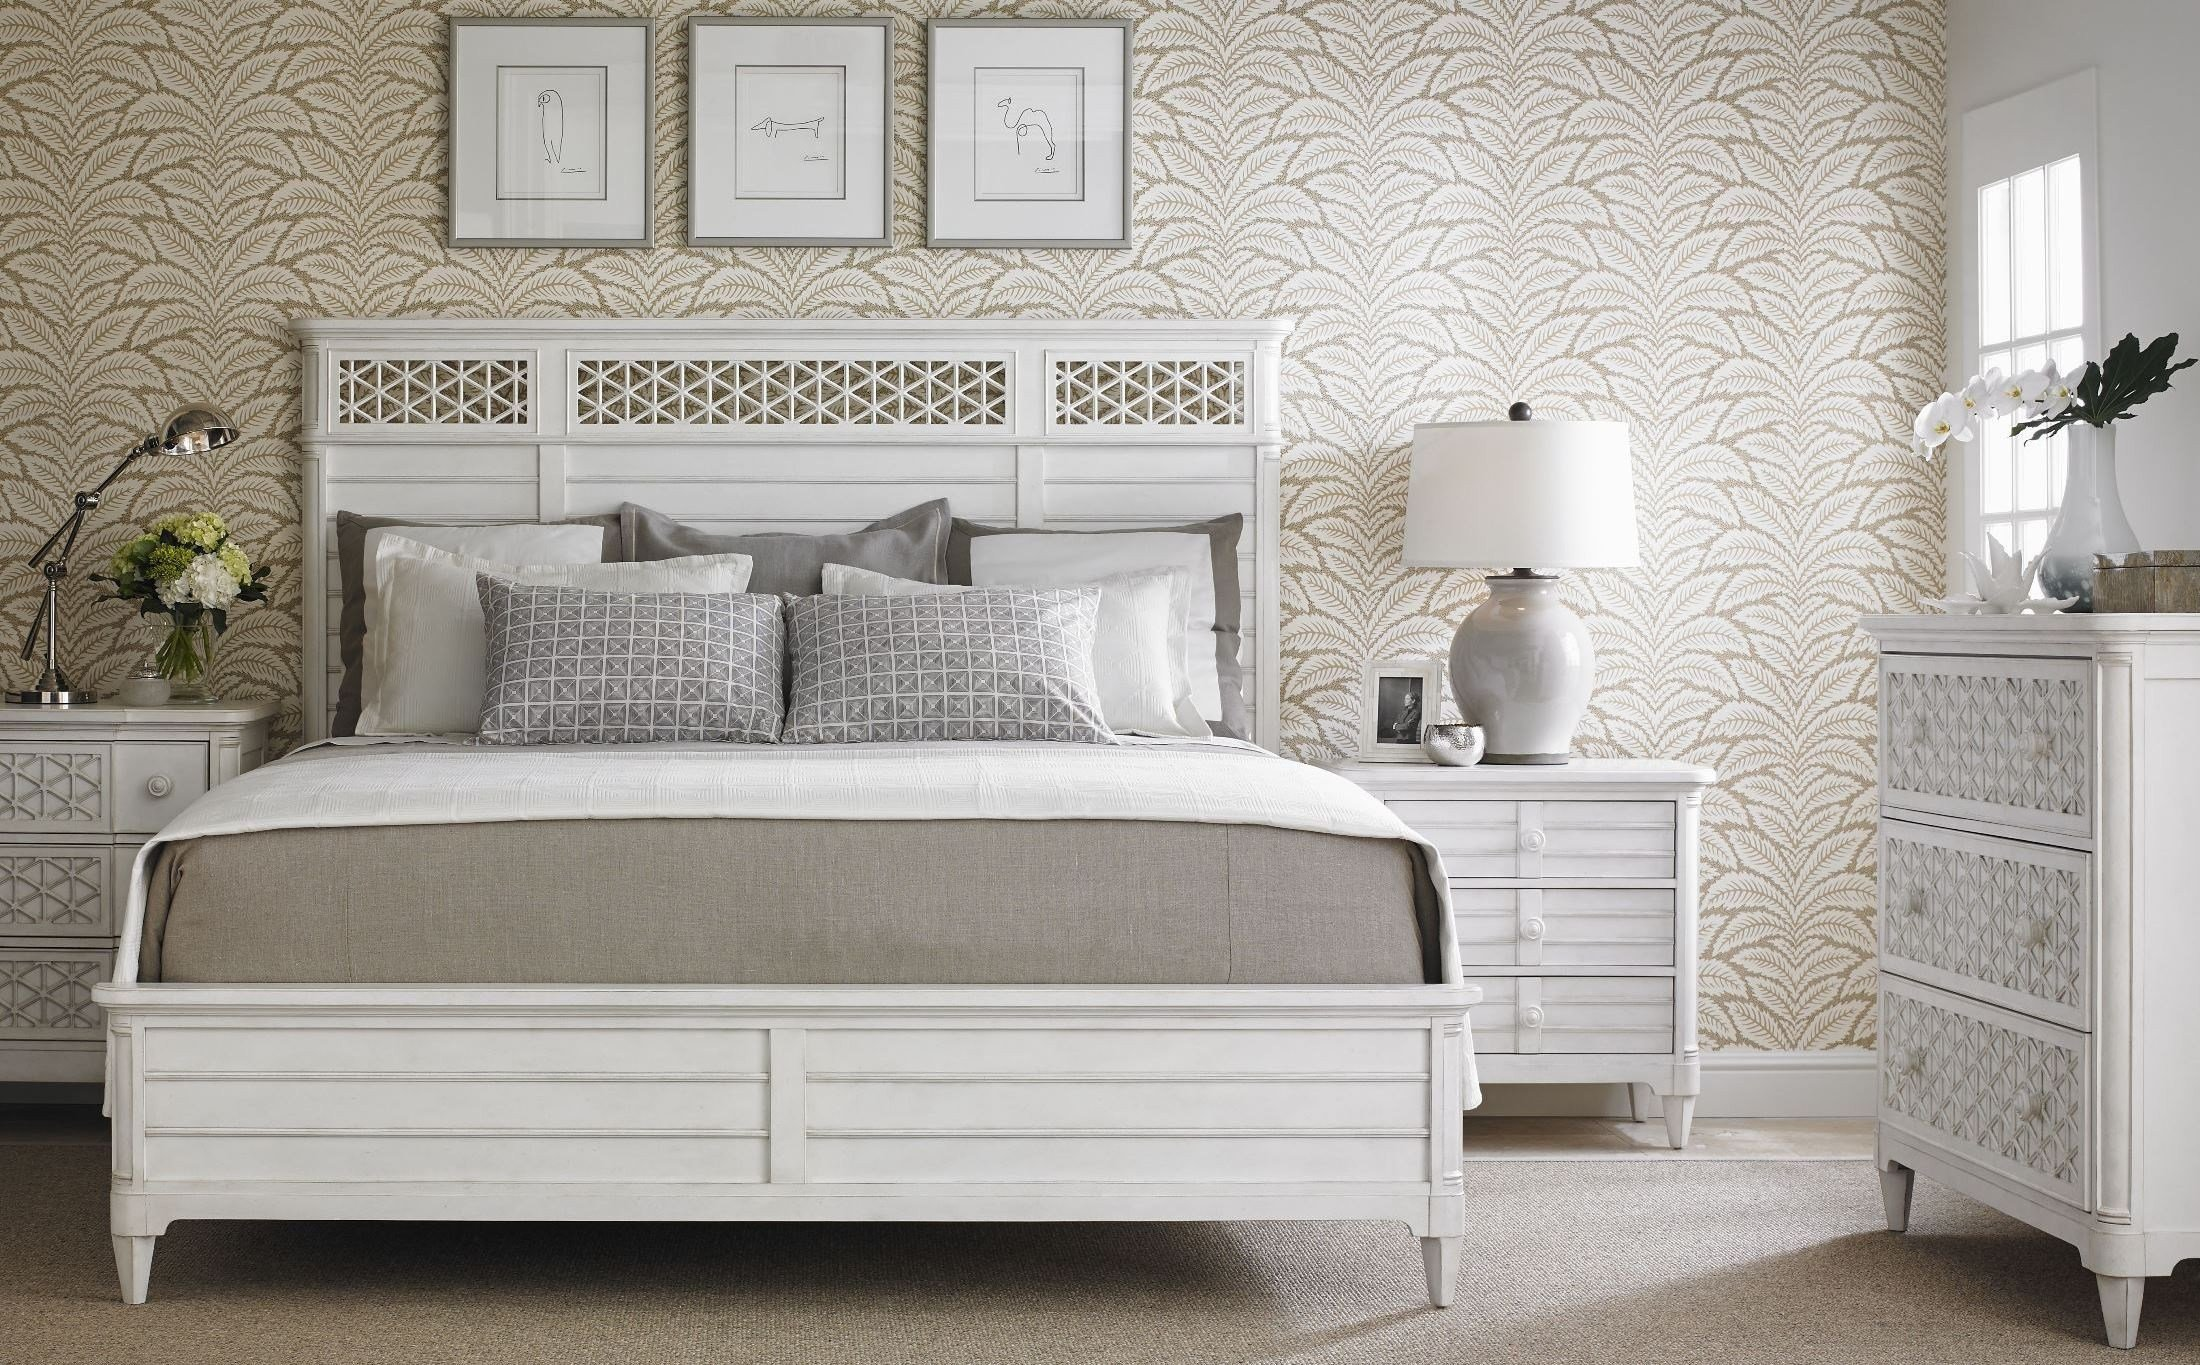 Best Coastal Living Parchment Cypress Grove Wood Panel Bedroom Set From Coastal Living 451 23 40 With Pictures